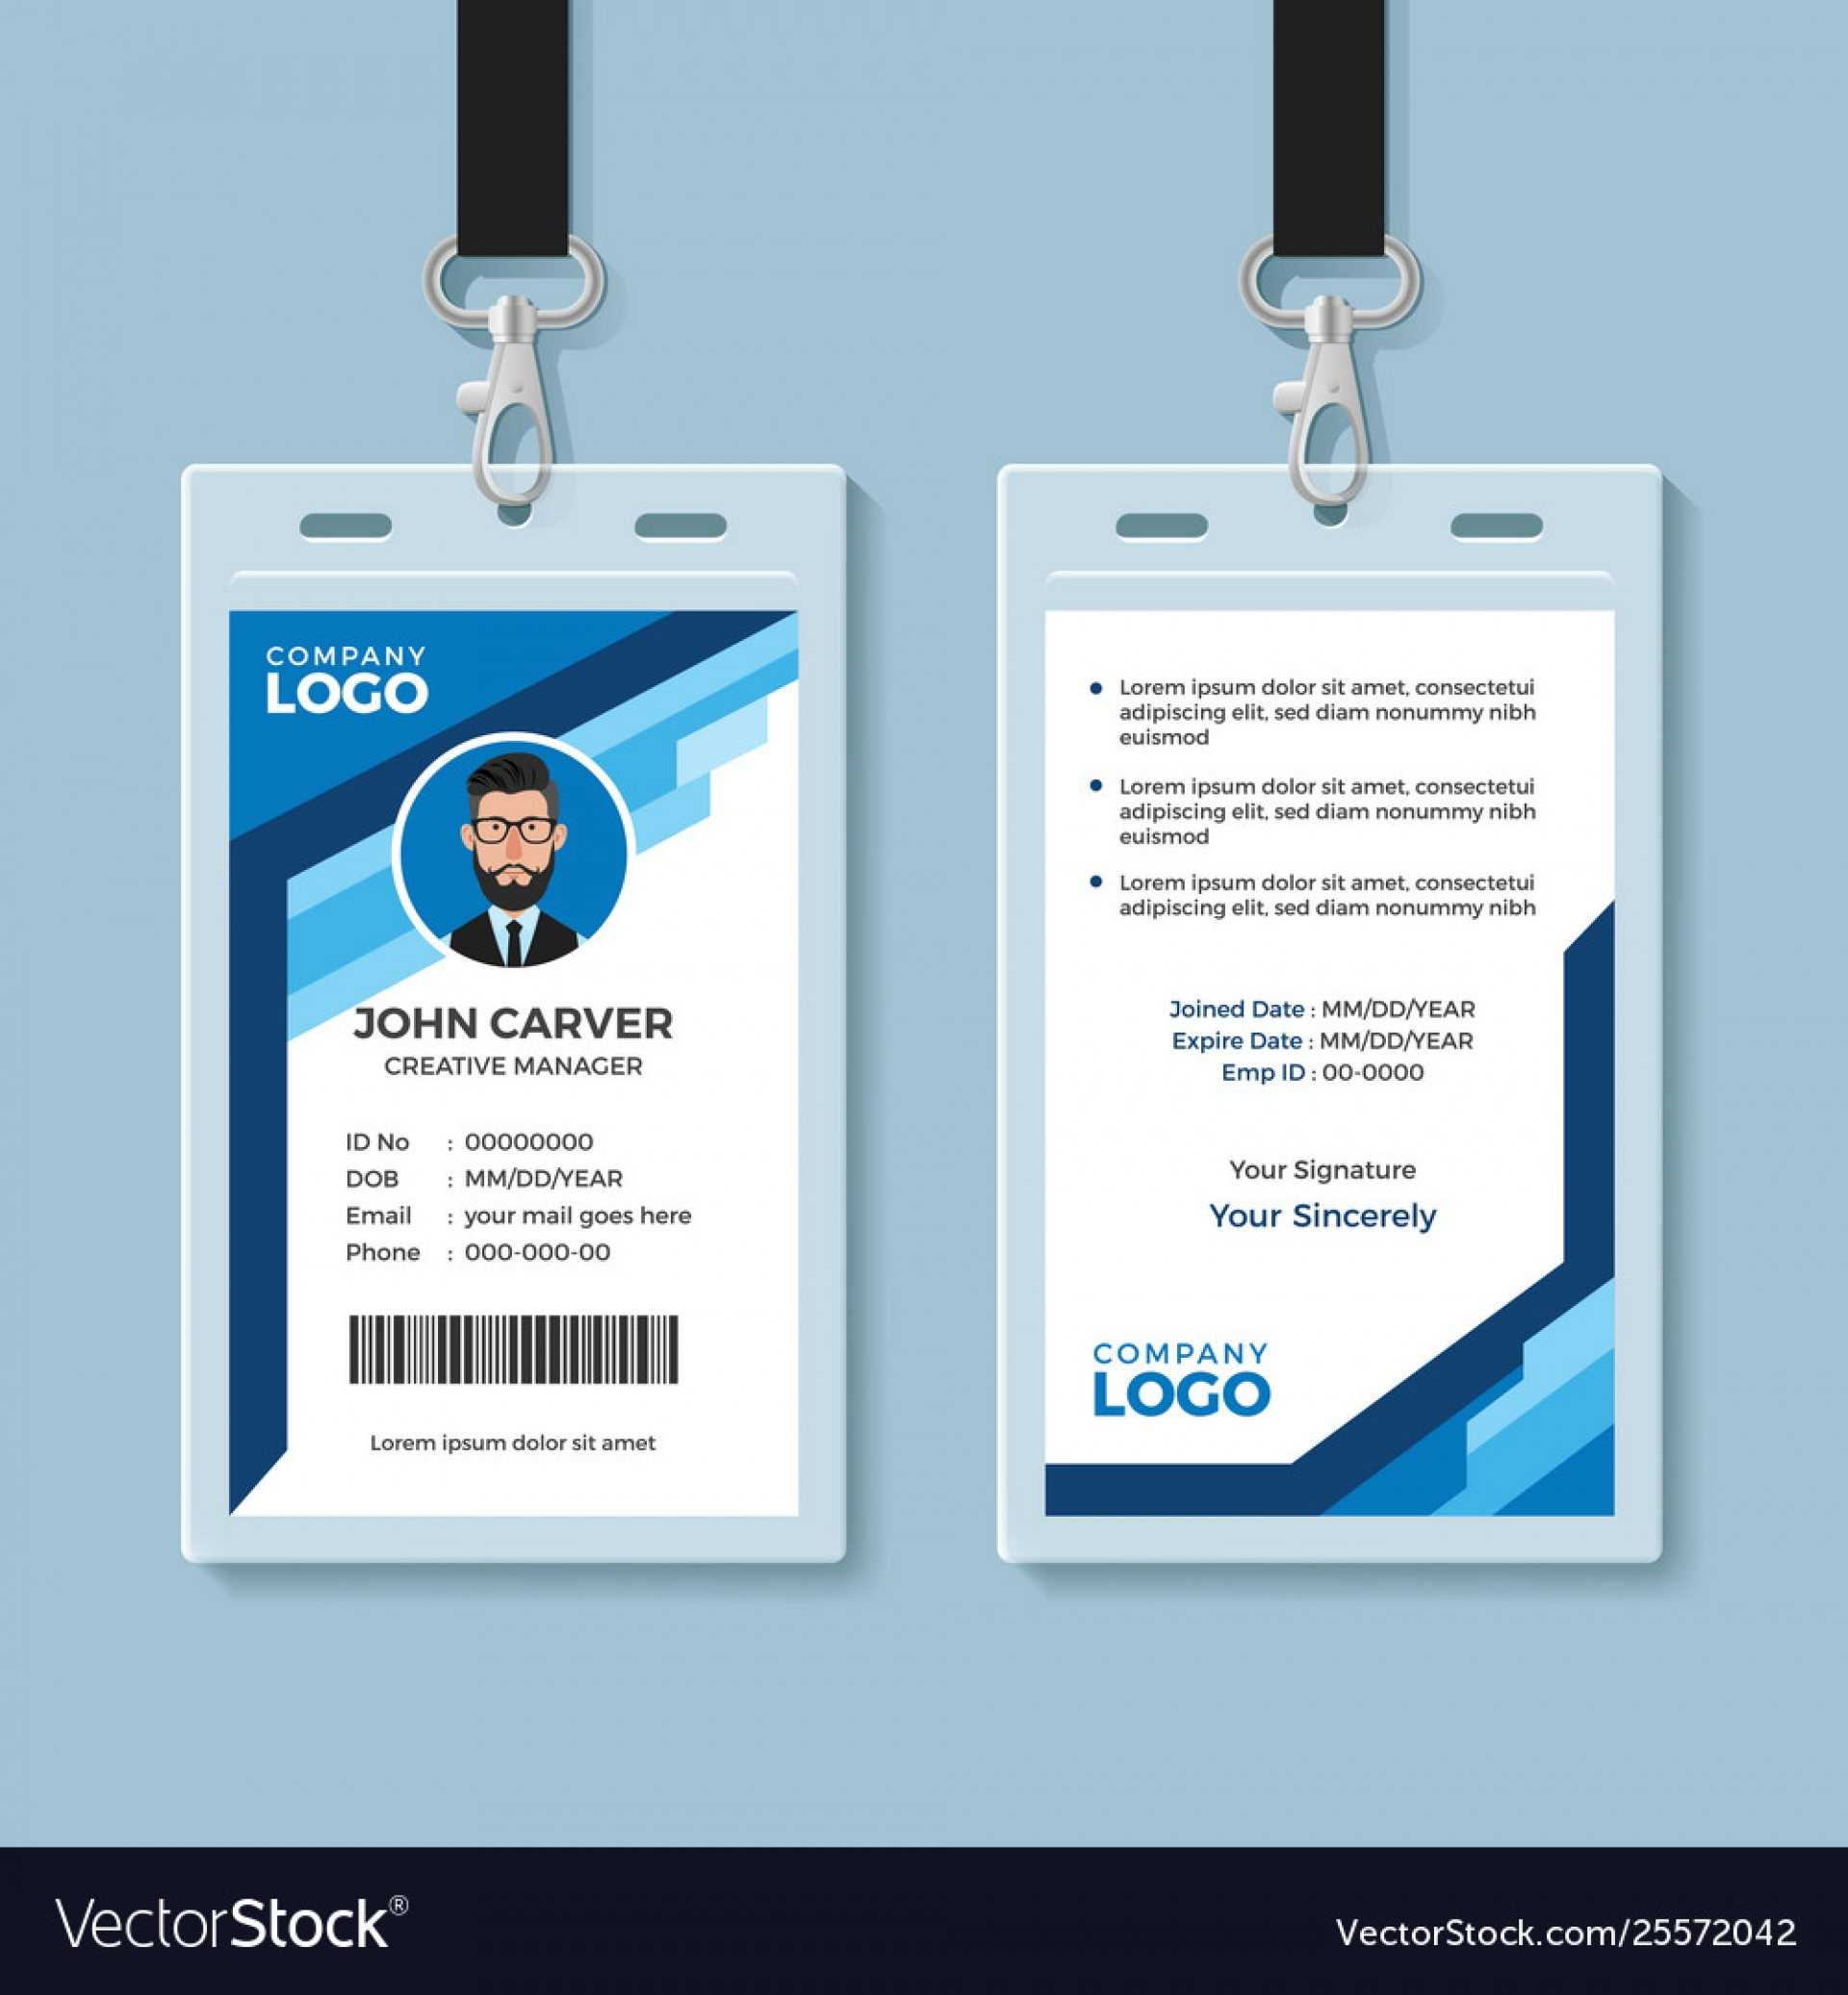 022 Template Ideas Employee Id Card Ai Free Exceptional In Id Card Template Ai